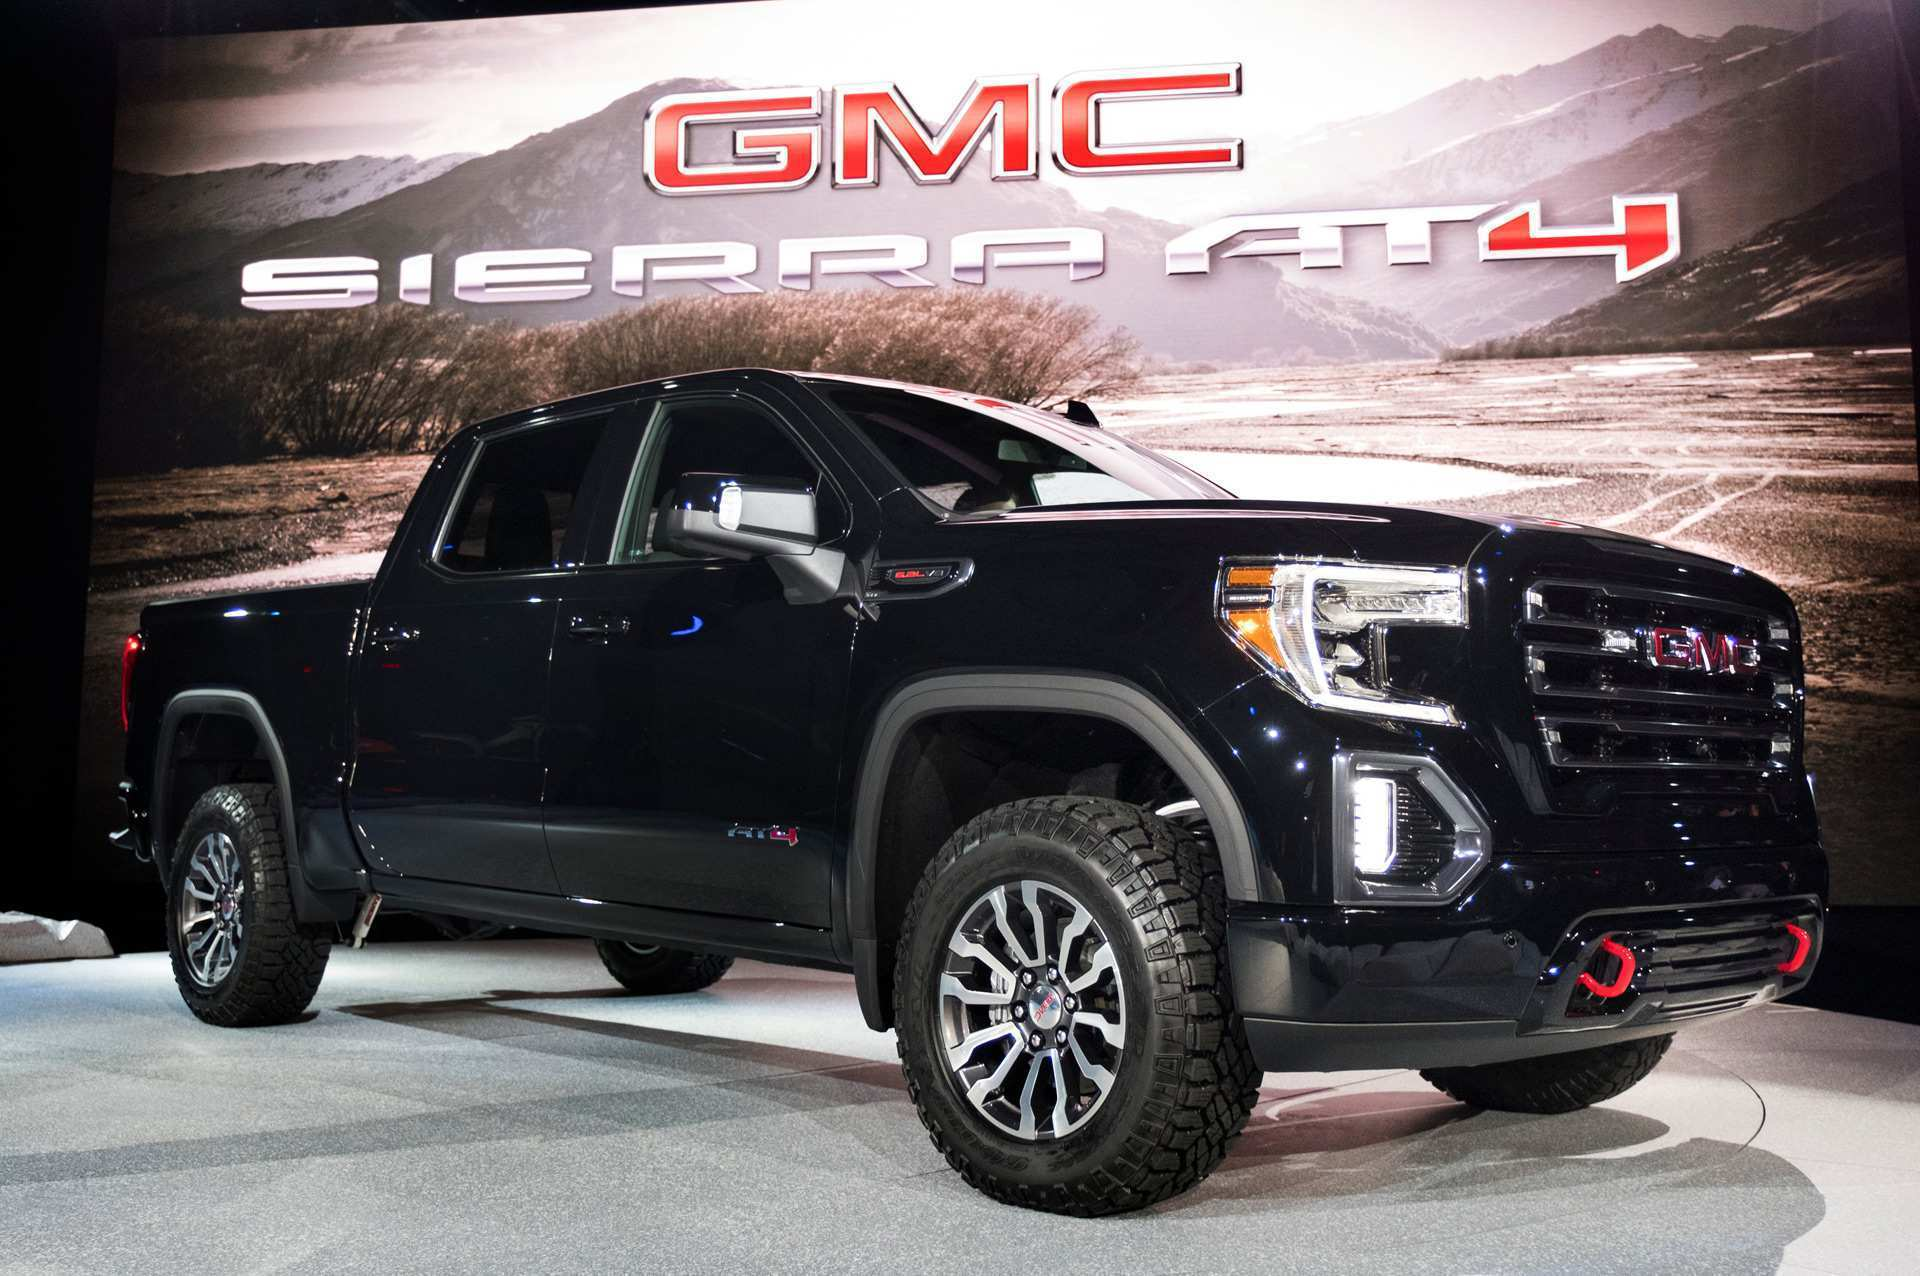 27 Concept of 2019 Gmc News Model for 2019 Gmc News